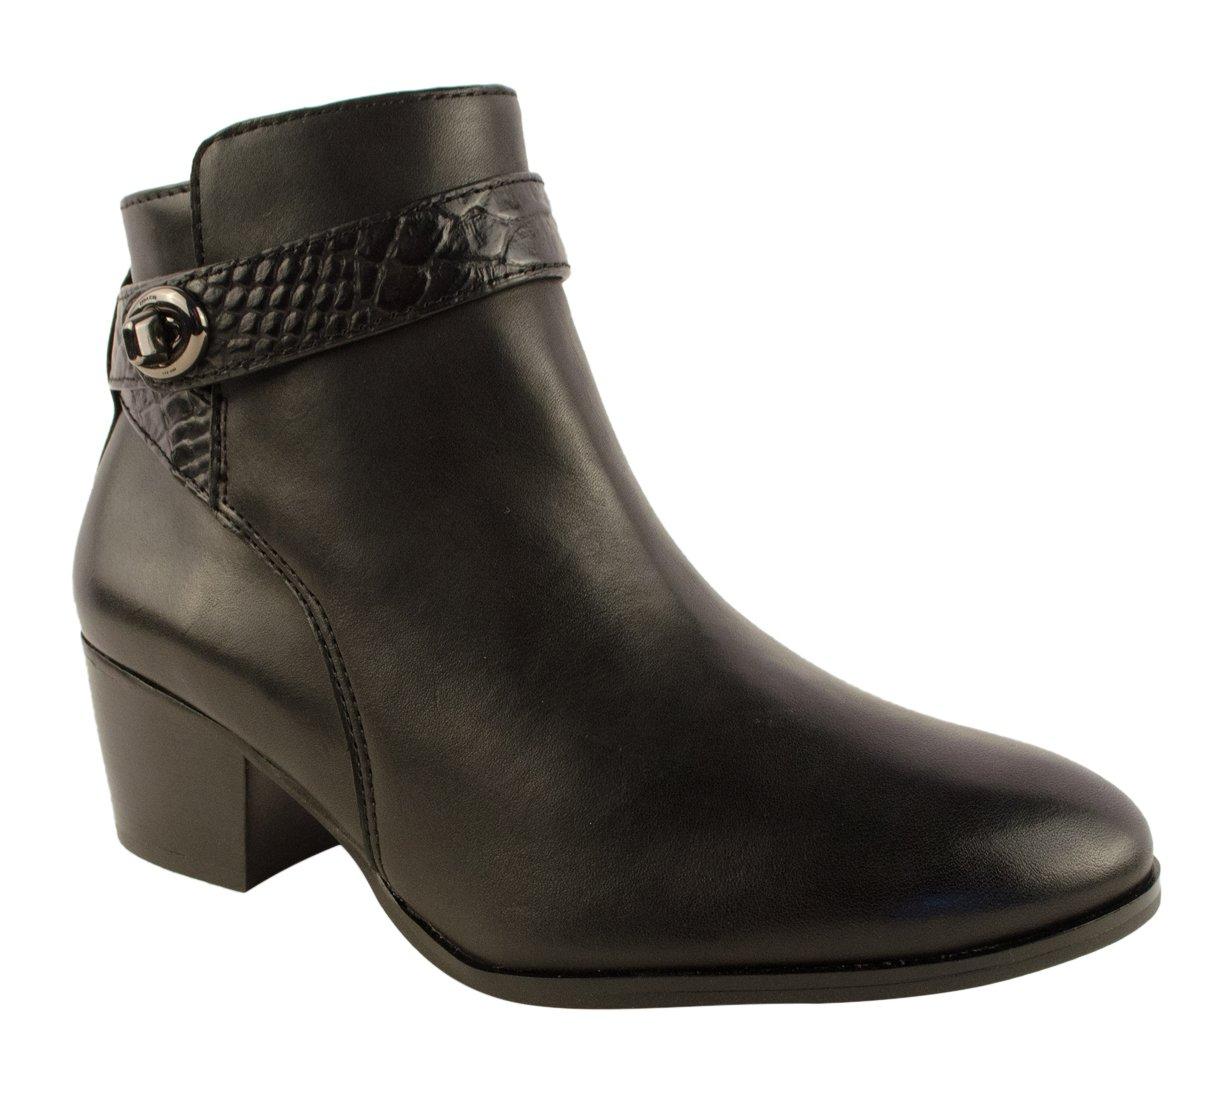 Coach Patricia Women US 6 Black Ankle Boot